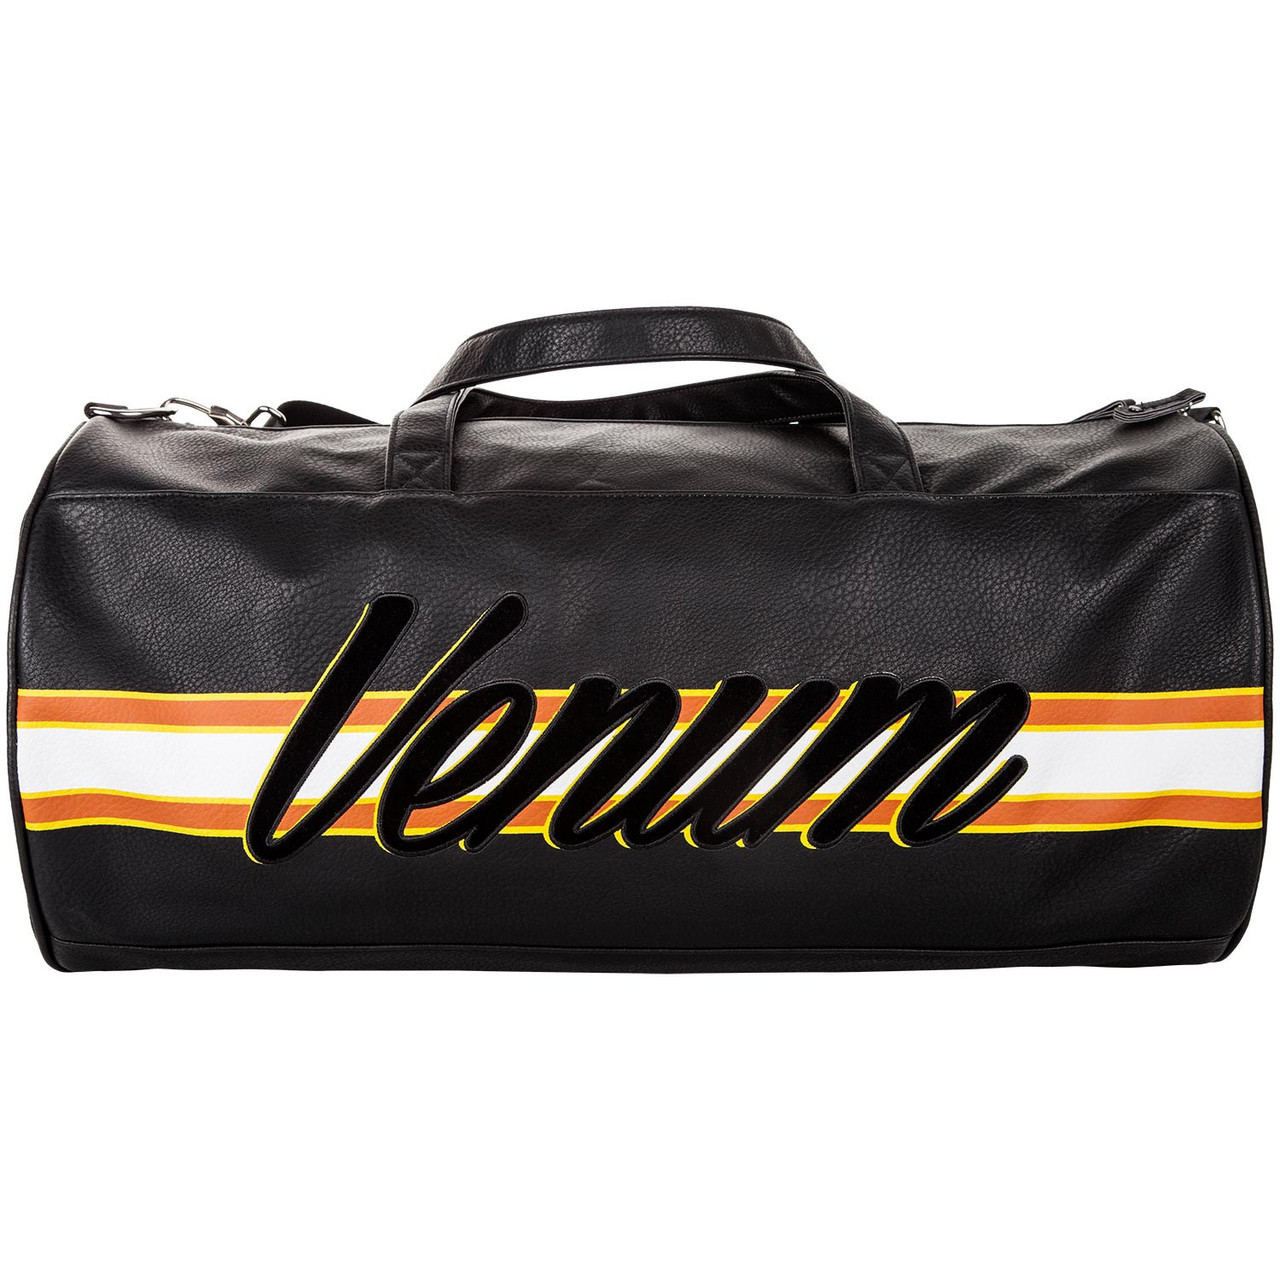 ffc2060477 ... Venum Cutback Sport Bag Black Yellow ...